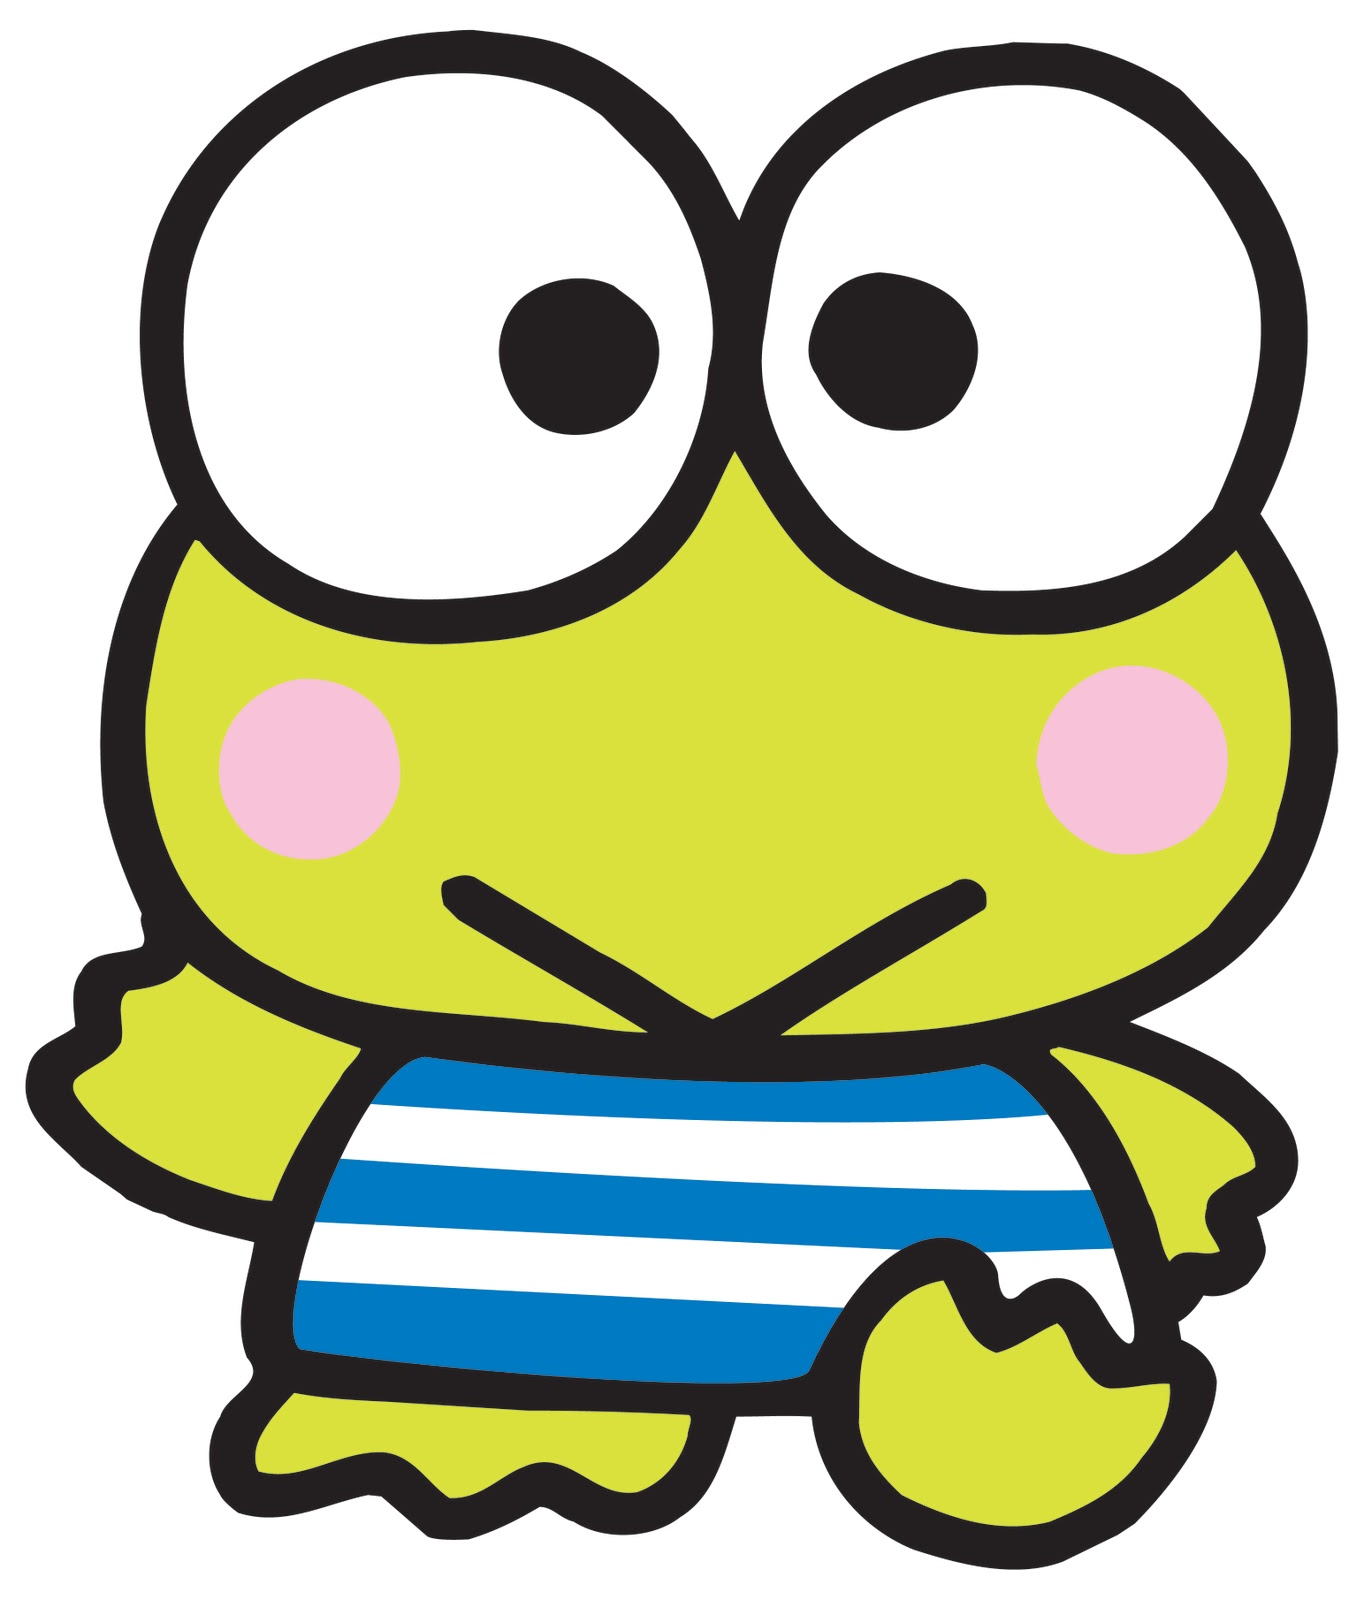 Keroppi Wallpaper Wallpapers: Cute Thing: Junho 2010